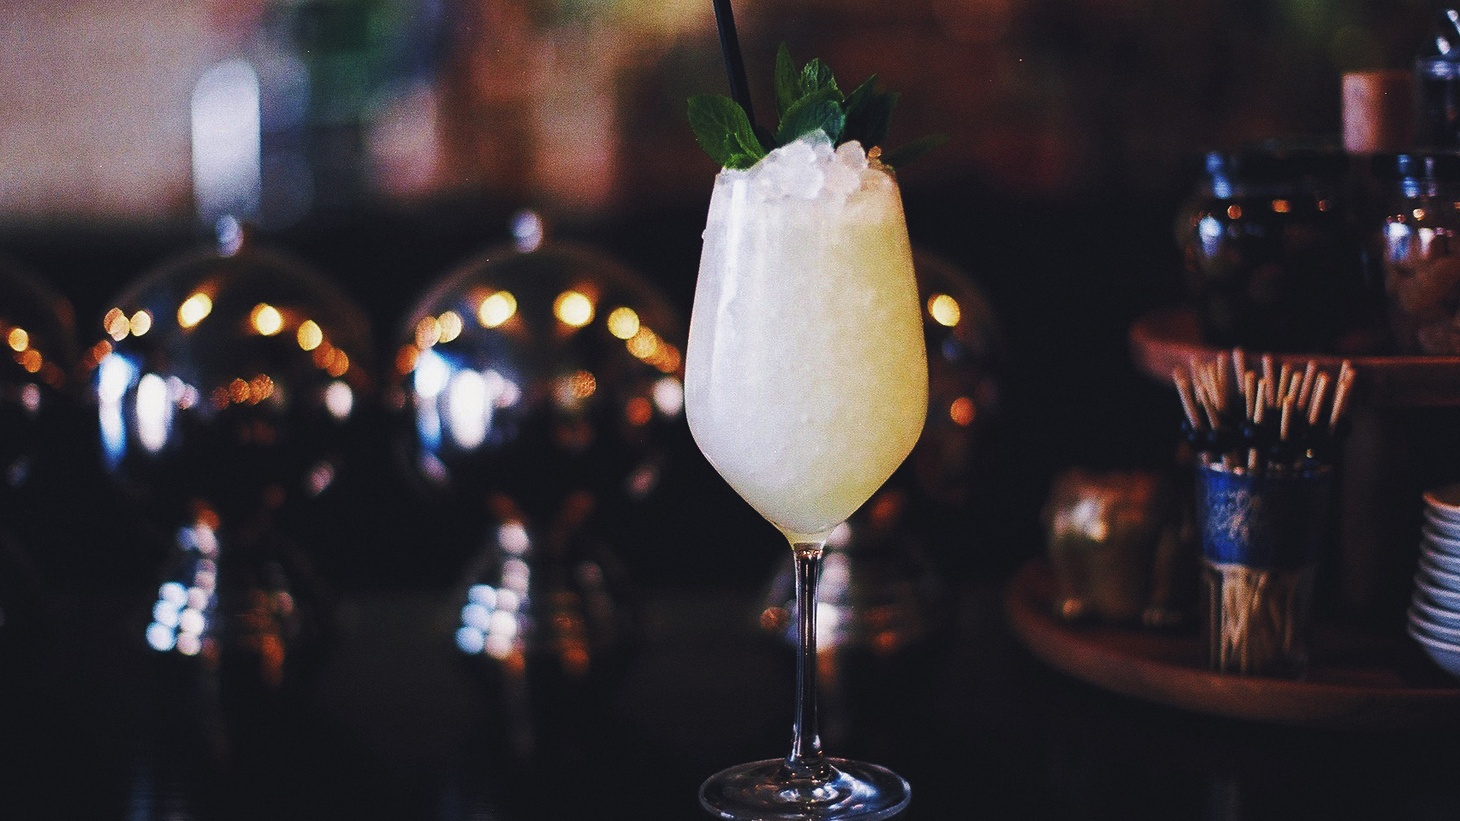 Cocktail historian David Wondrich outlines the legacy of barman Jerry Thomas and Jonathan Gold tells us where to find the best cocktails in LA. Plus, we dive deep into Tiki's seductive lure of rum and kitsch.